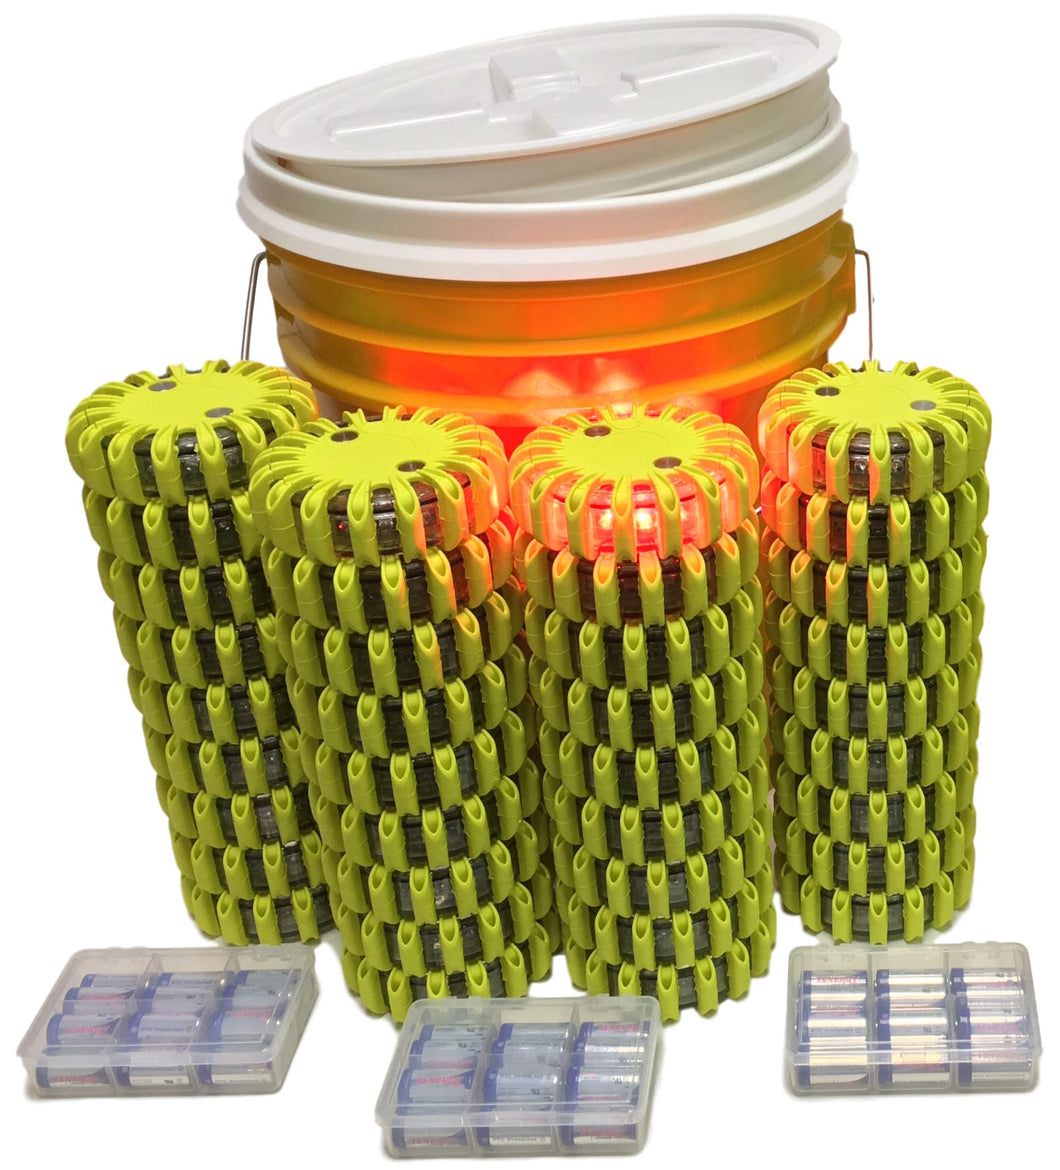 36-Pack Bucket with easy-twist on/off lid